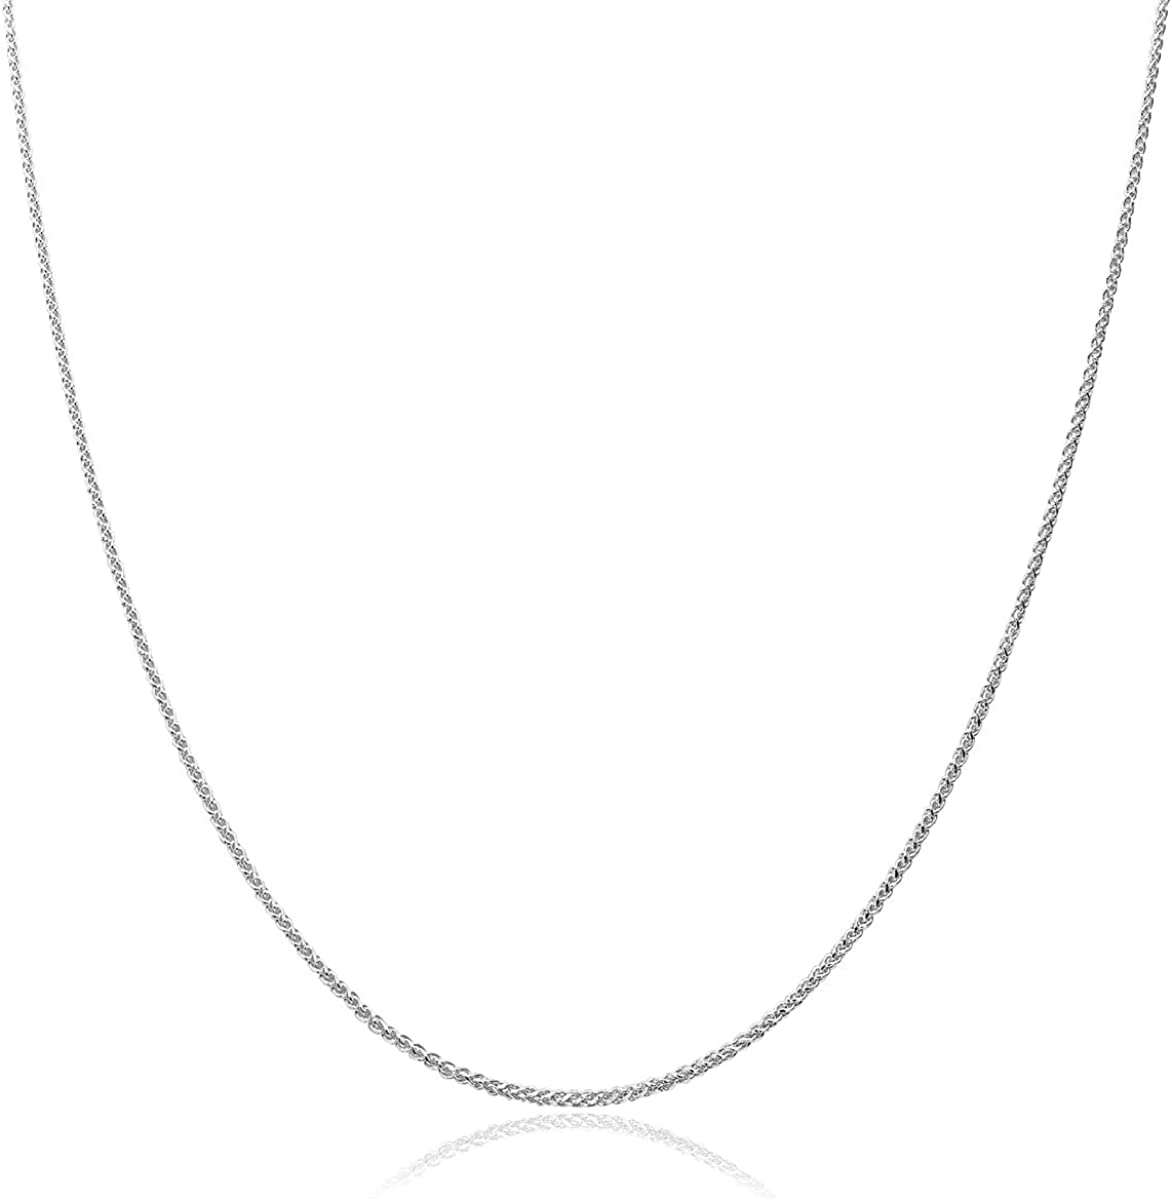 Honolulu Jewelry Company 10K Solid Gold 1.1mm Wheat Chain Necklace, 16